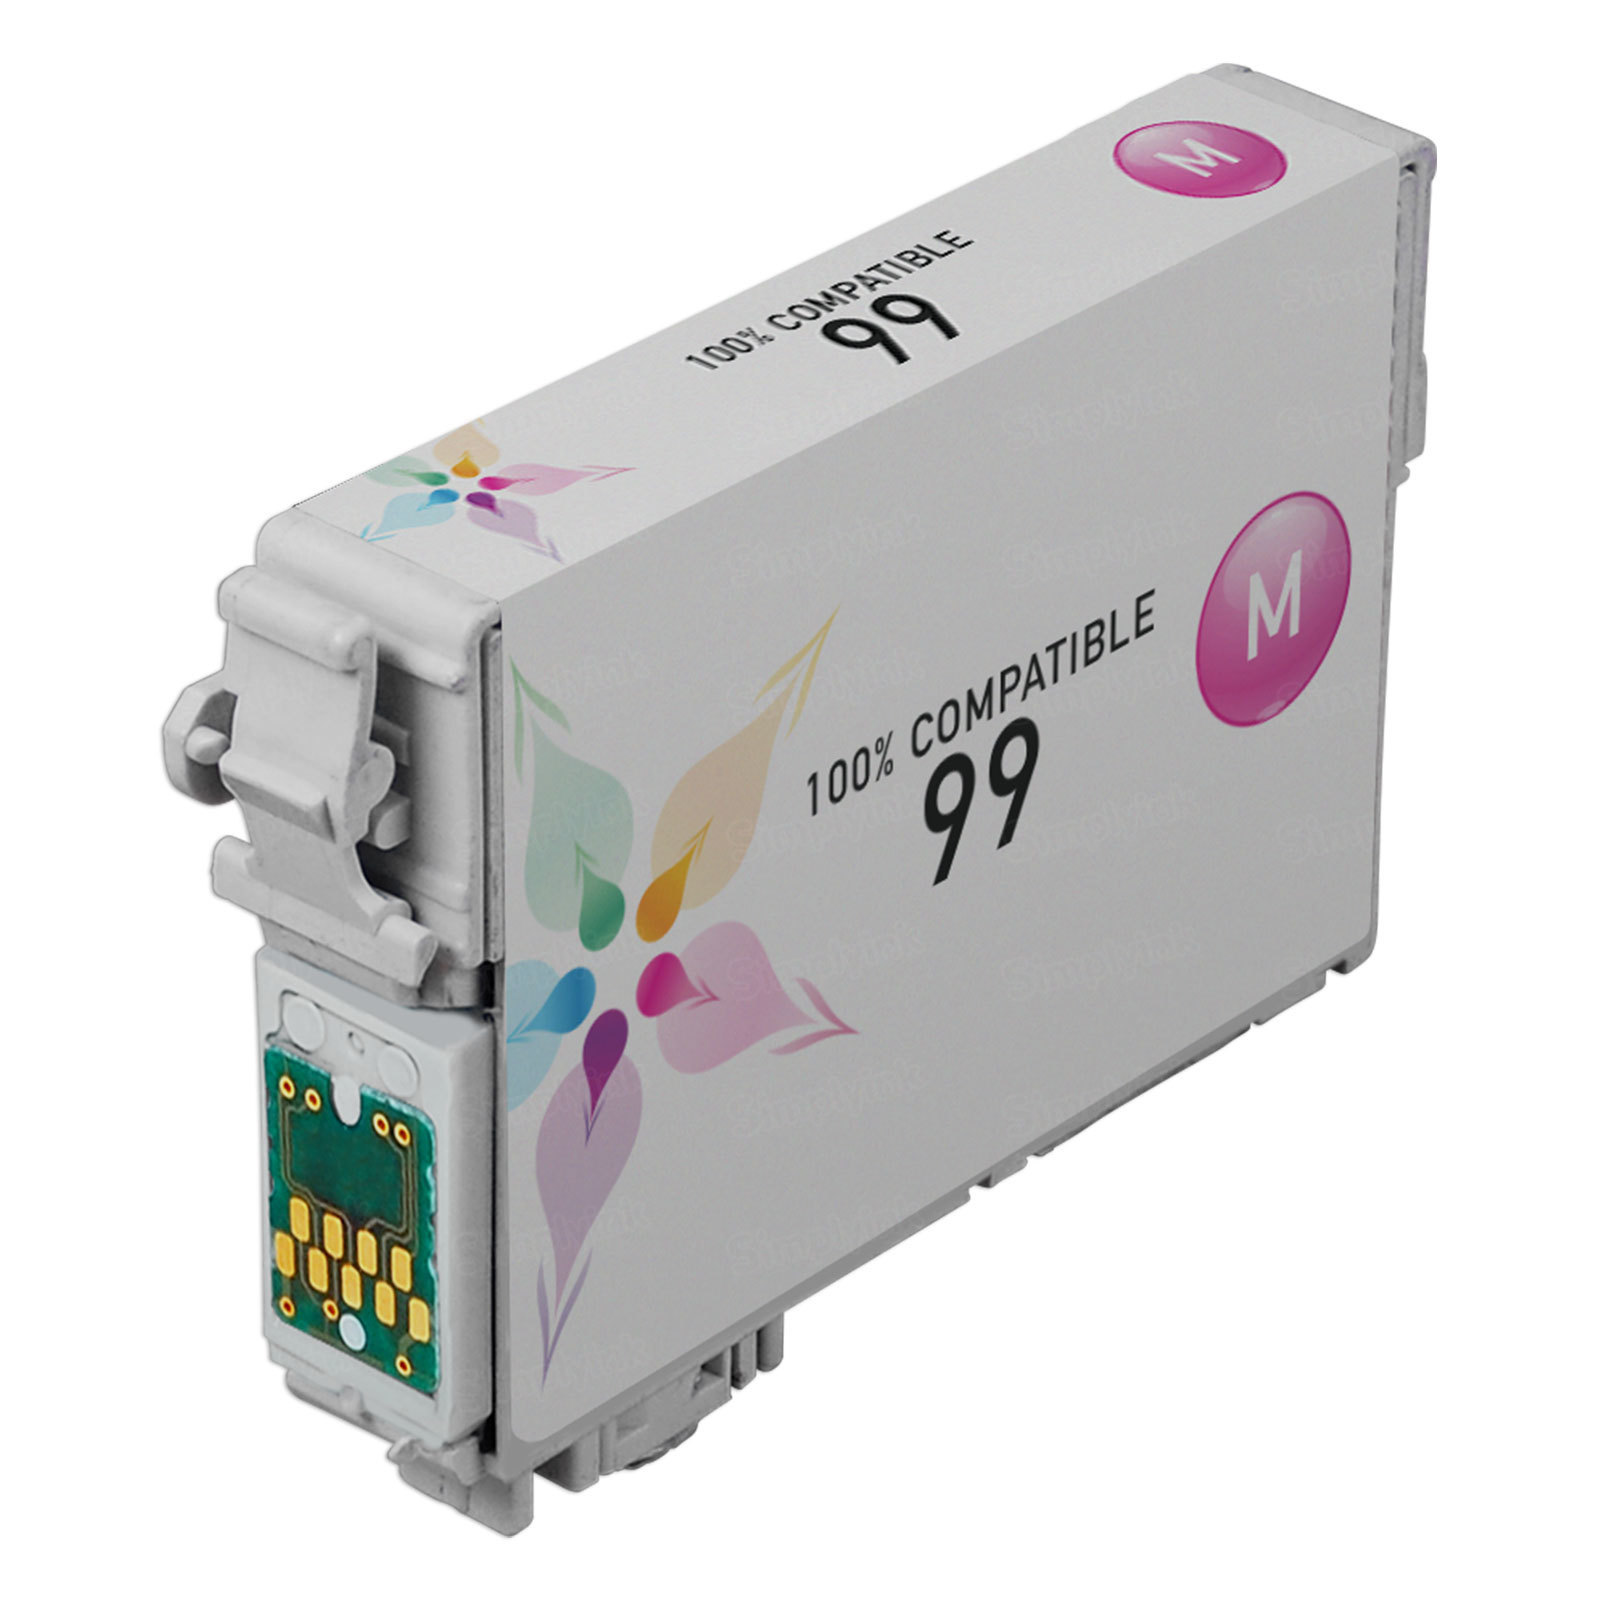 Epson Remanufactured T099320 Magenta Inkjet Cartridge for the Artisan 700, 800